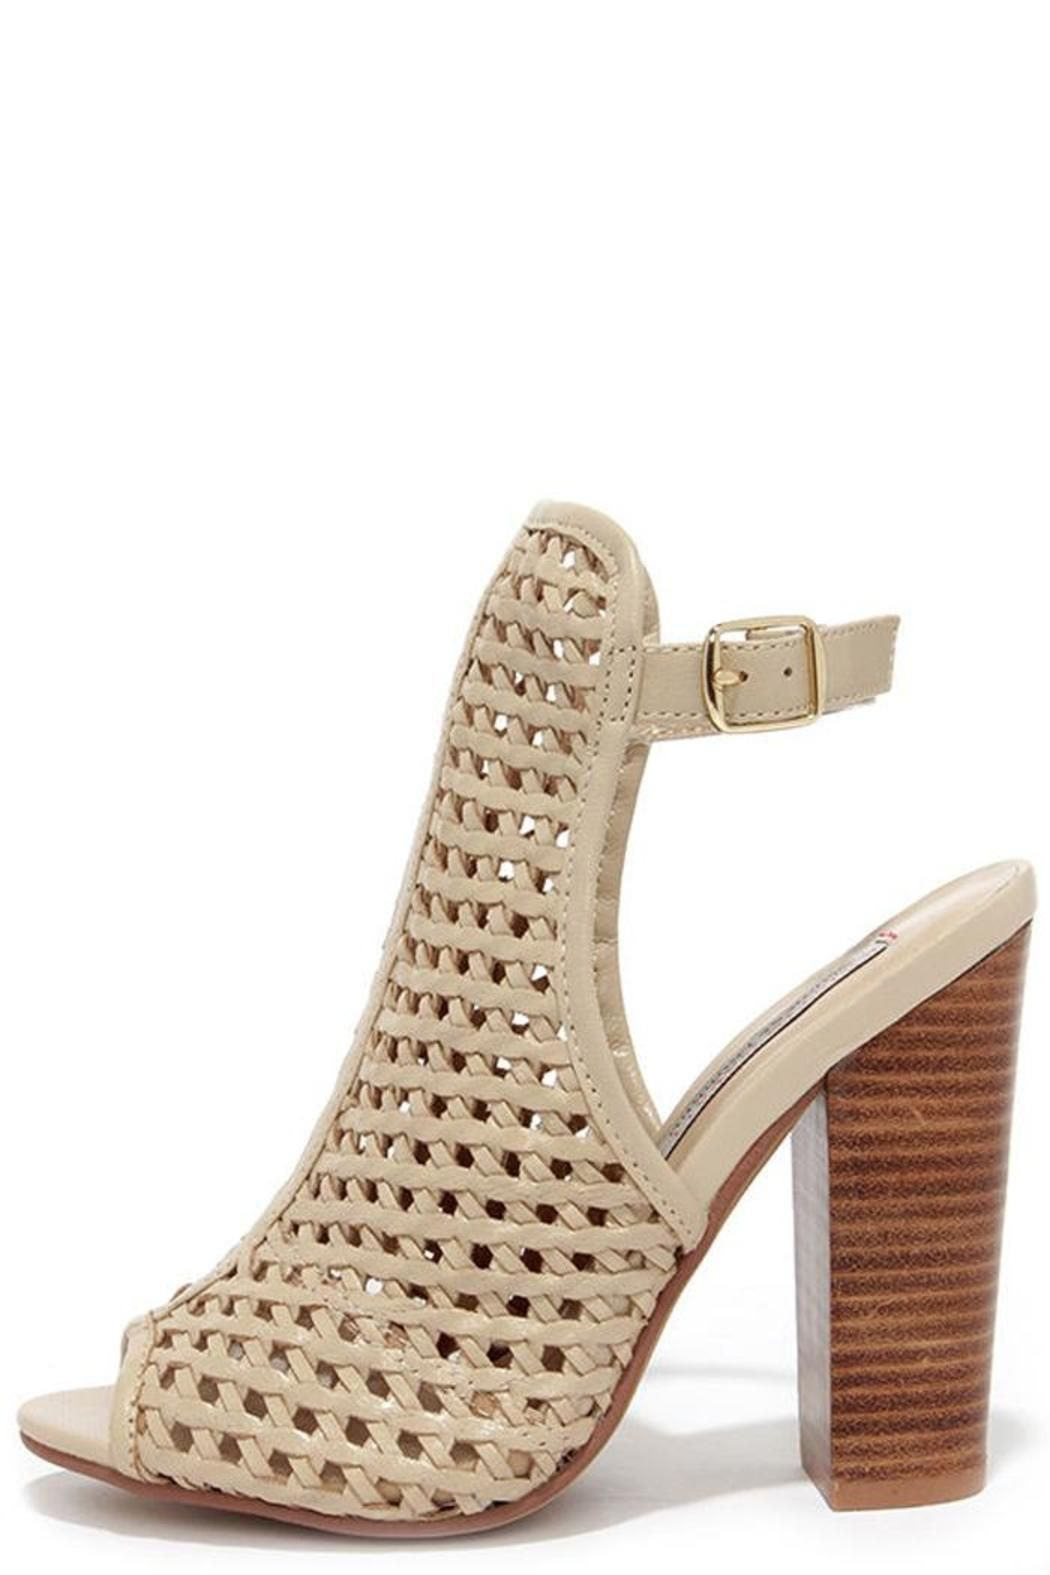 a1445427562 Versatile leather mesh front heeled sandal with buckle ankle strap. Pair  with any spring summer outfit or make it work for the cold weather with  printed ...